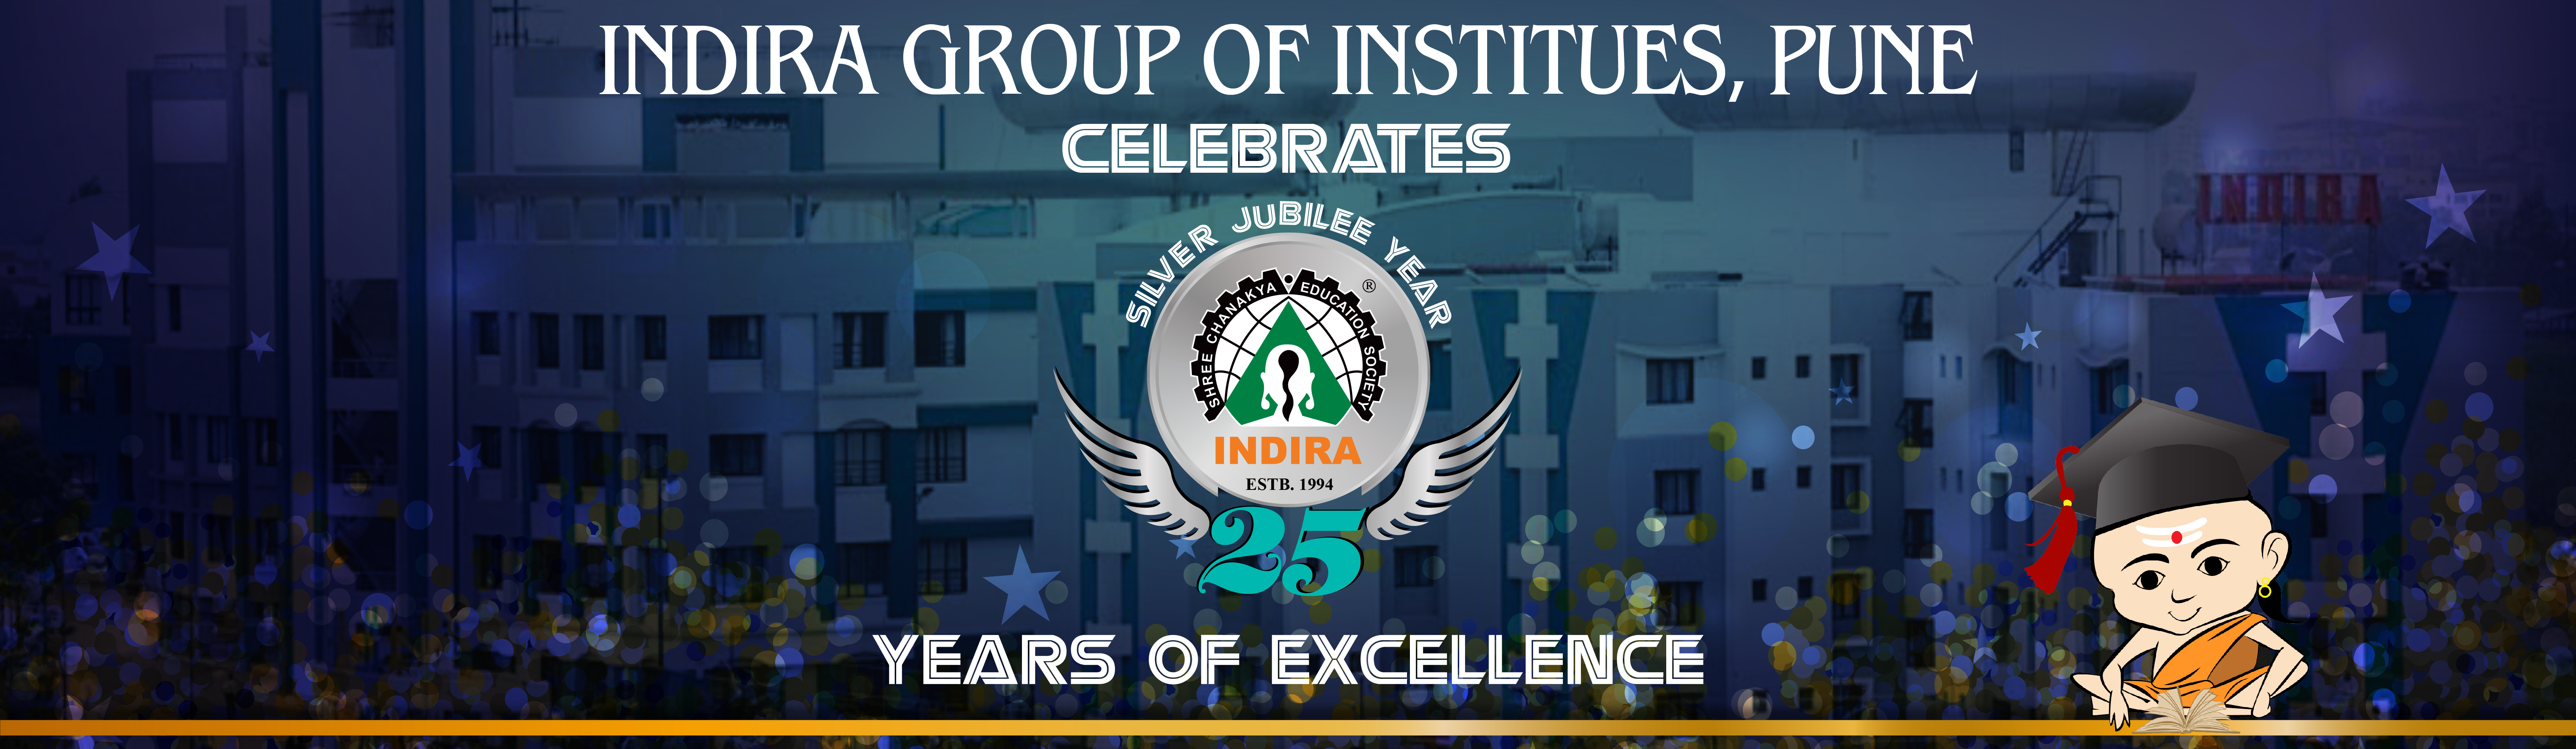 home indira group of institutes pune